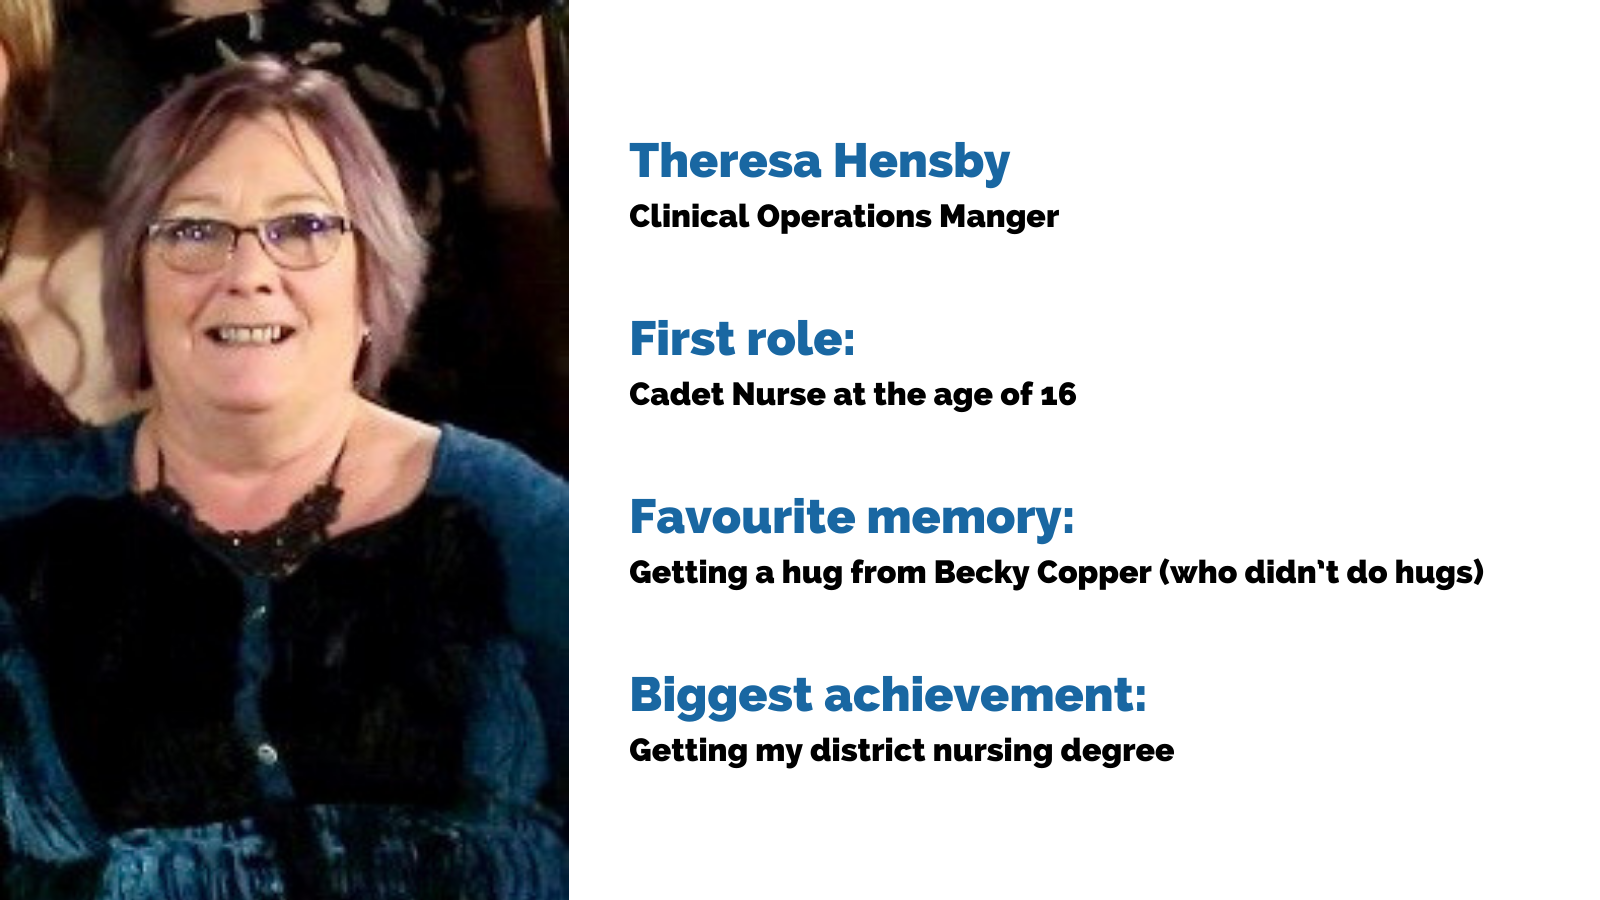 Theresa Hensby